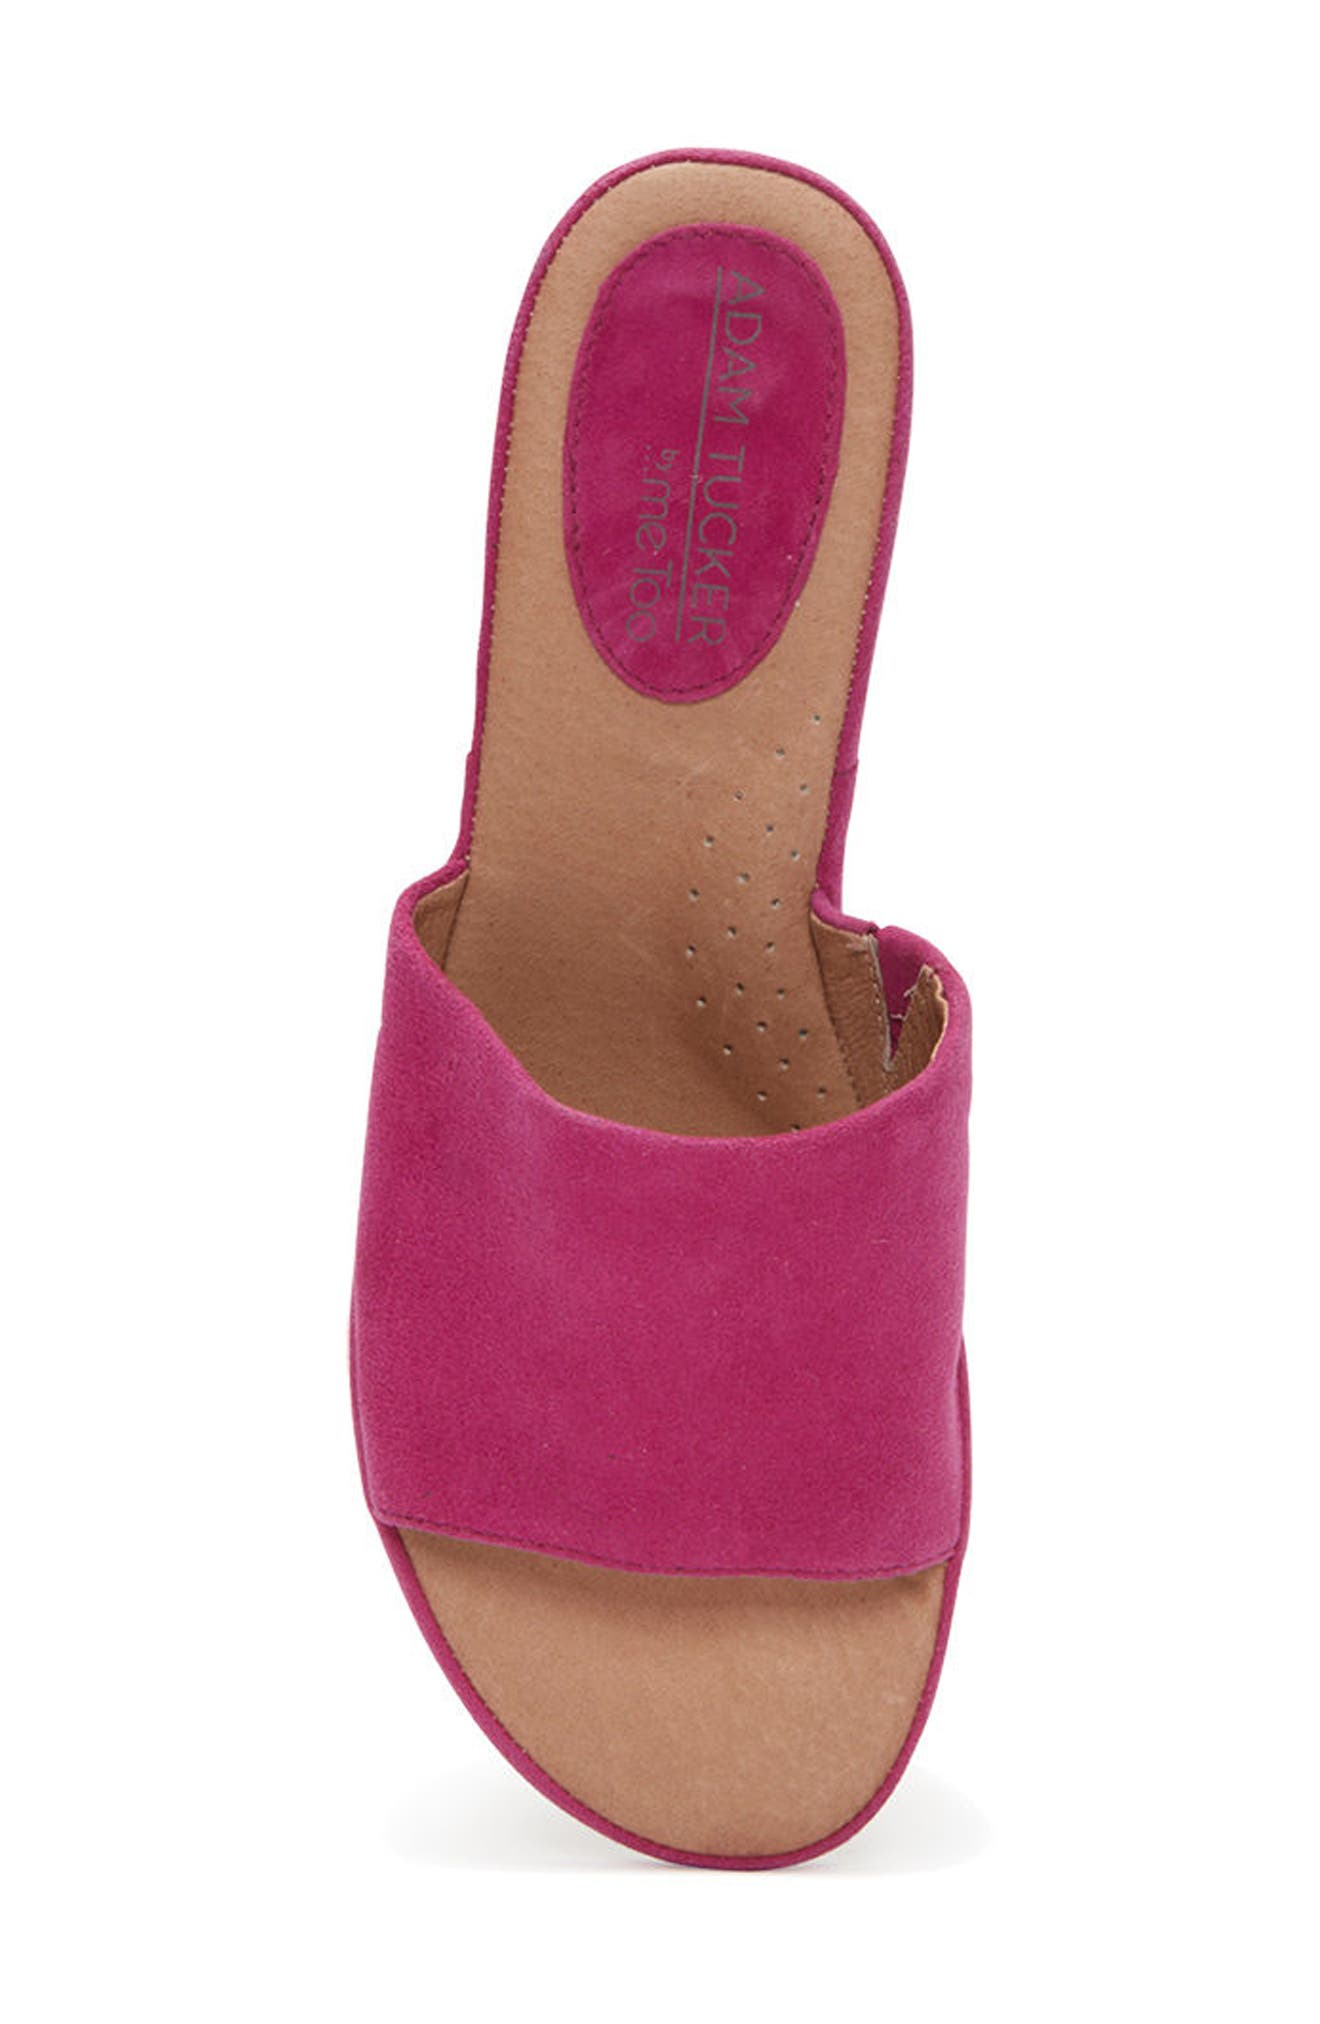 Adam Tucker Yolo Sandal,                             Alternate thumbnail 4, color,                             Fuchsia Suede